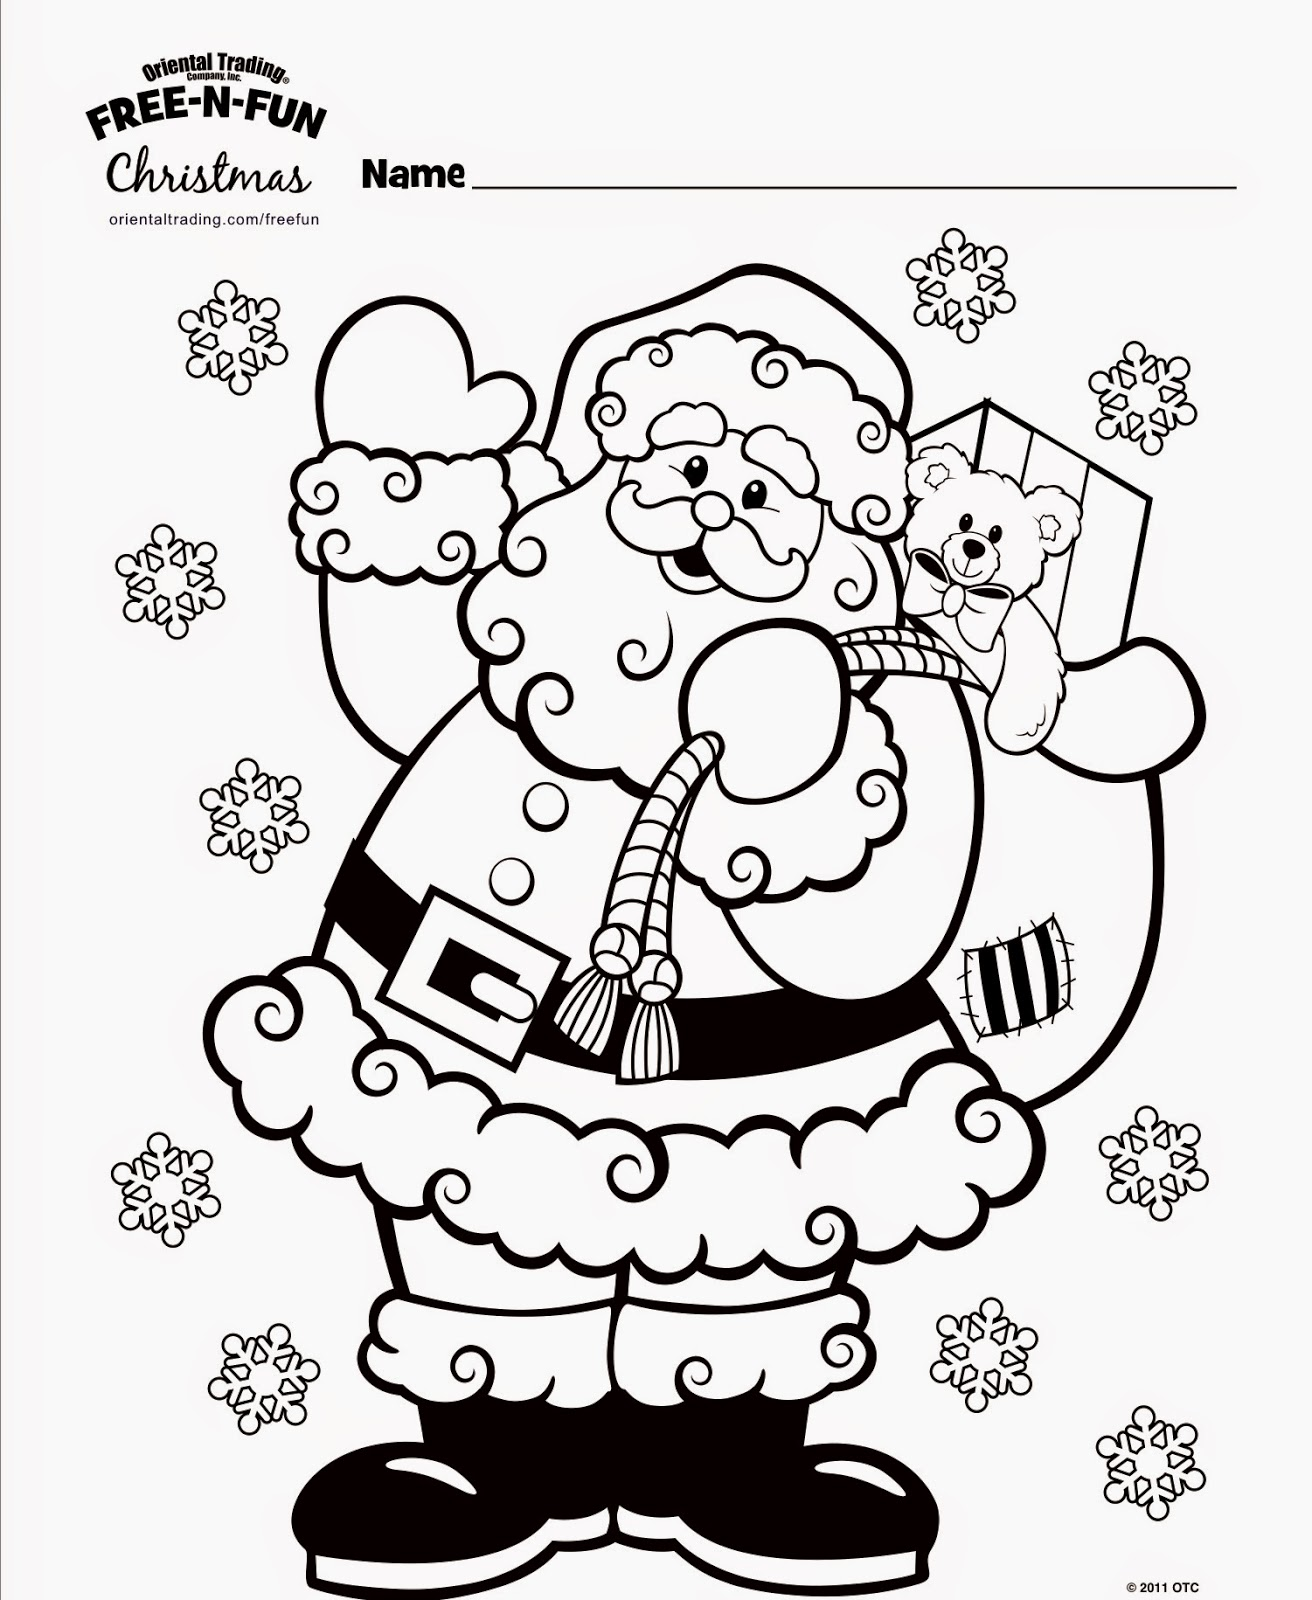 Oriental Trading Christmas.Oriental Trading Coloring Pages Christmas At Getdrawings Com